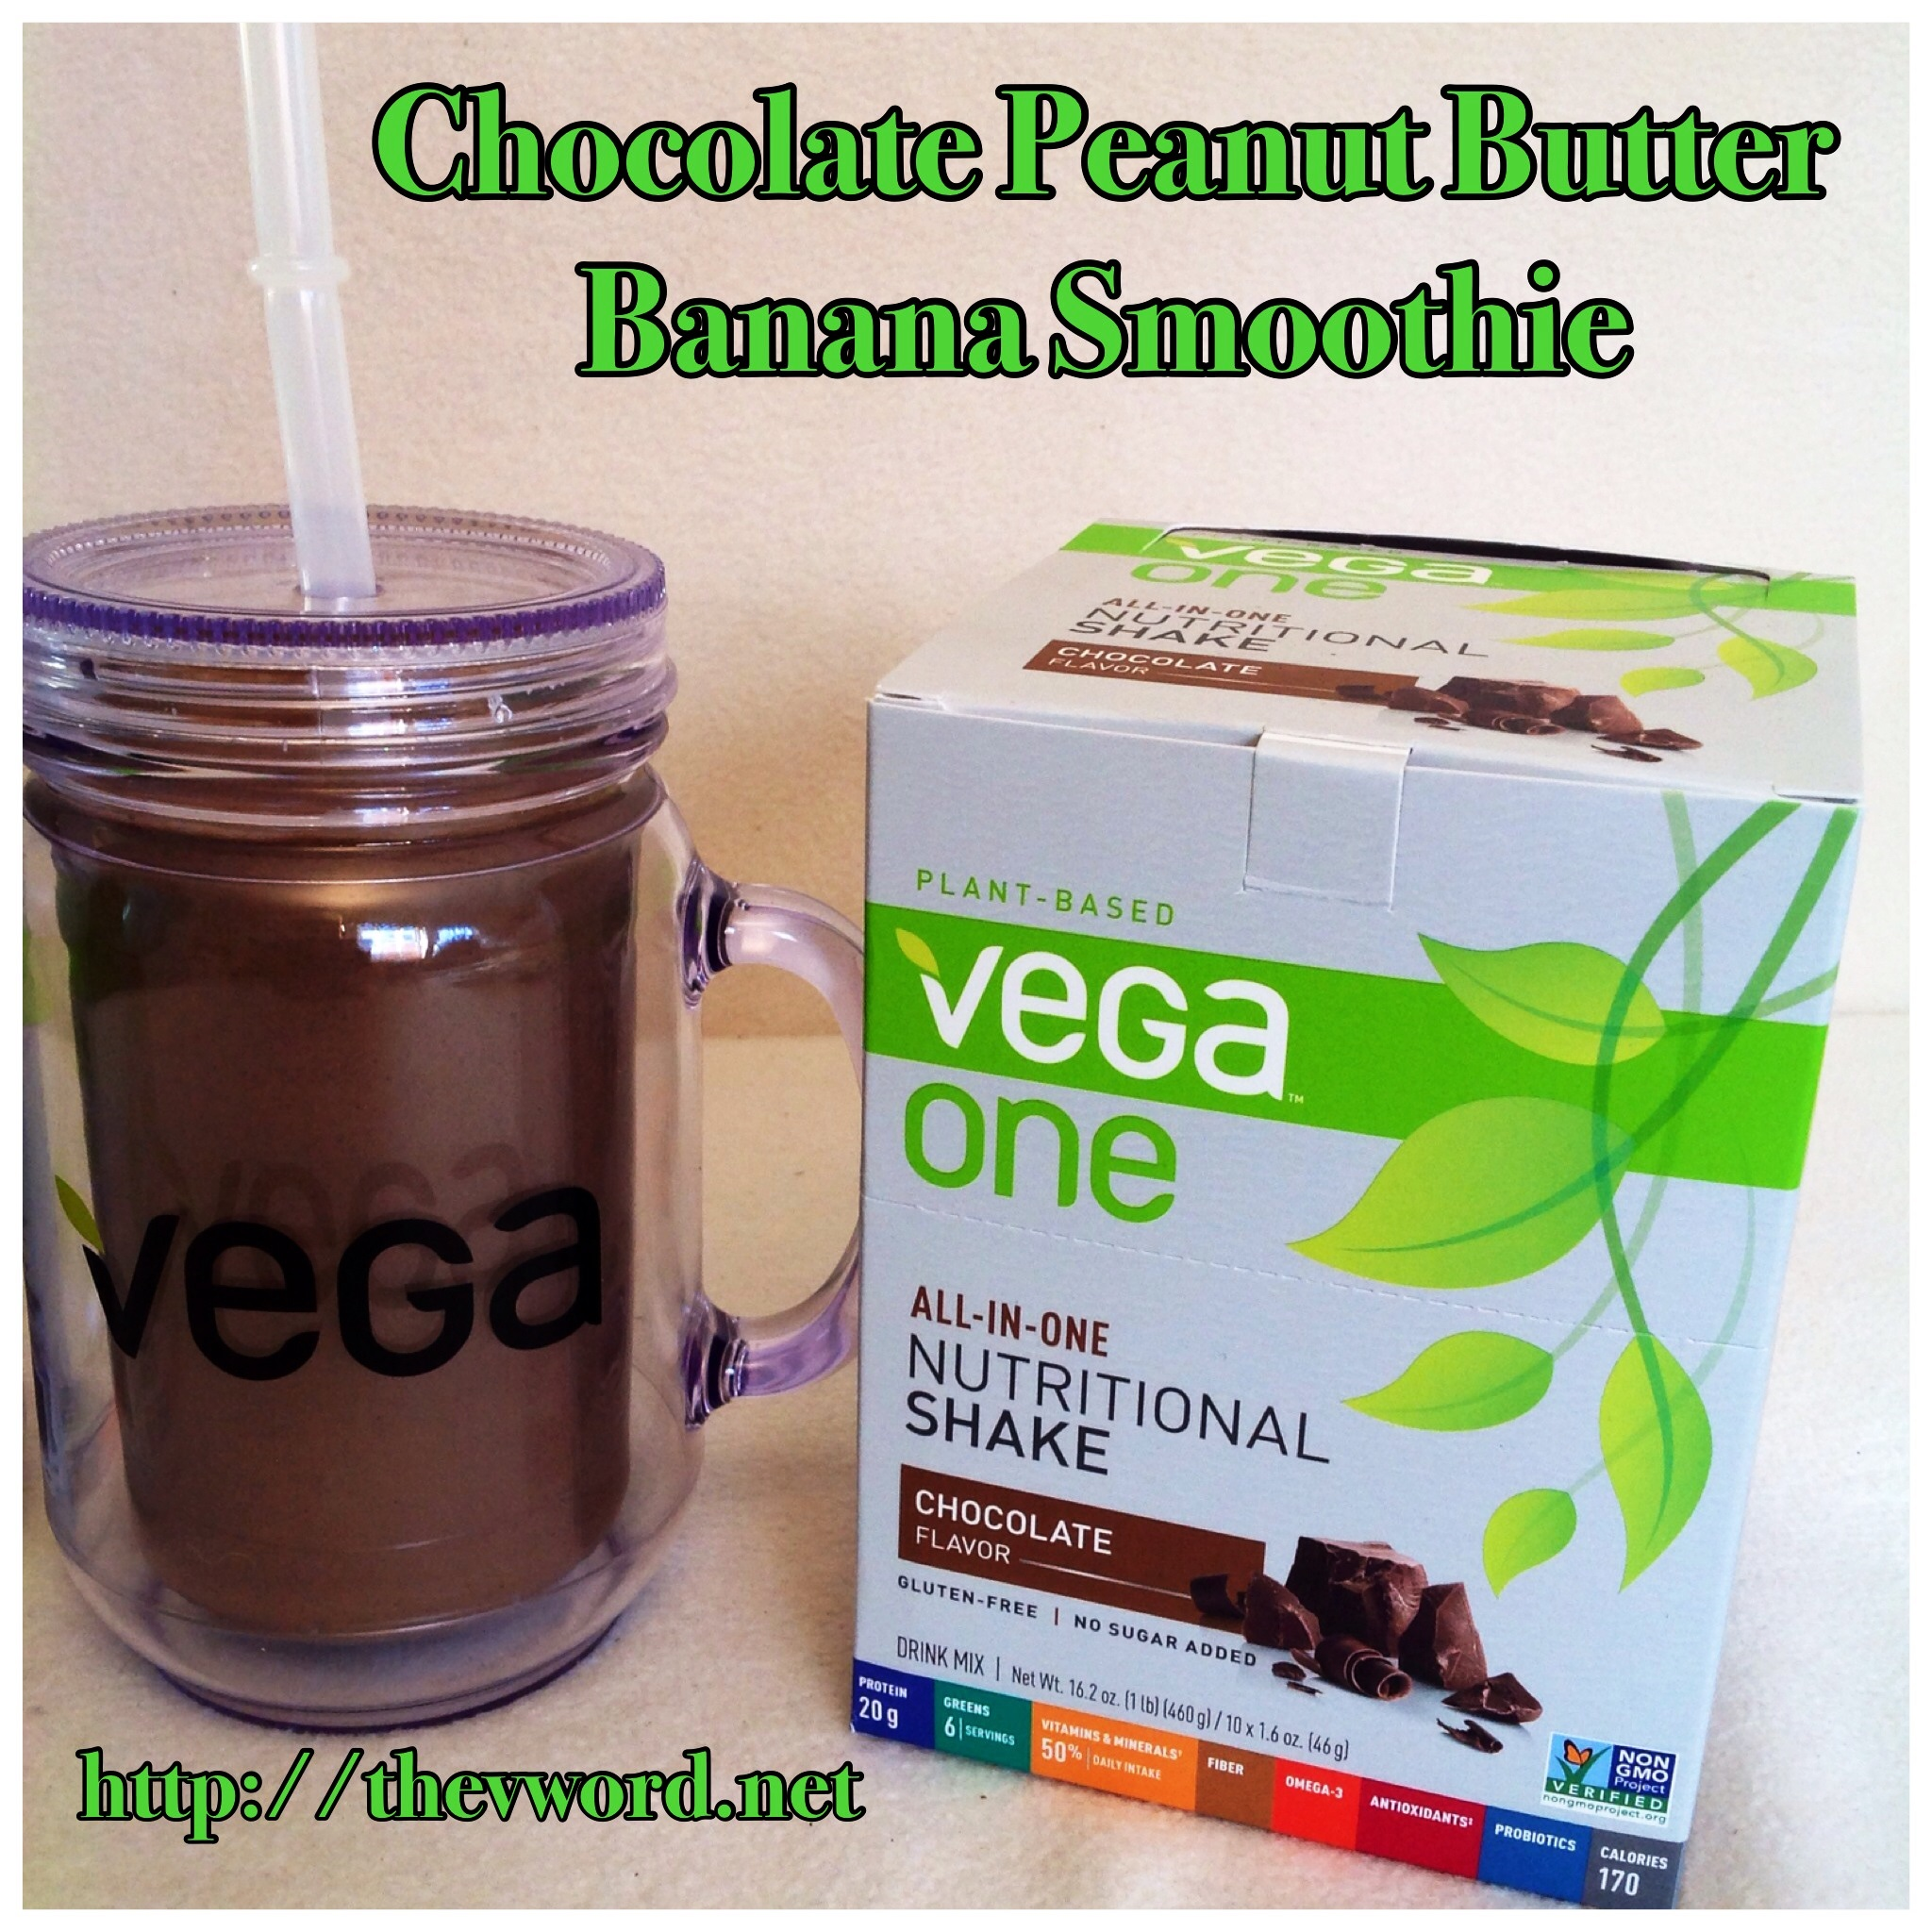 Product Review: The NEW Vega One and a Chocolate Peanut Butter ...